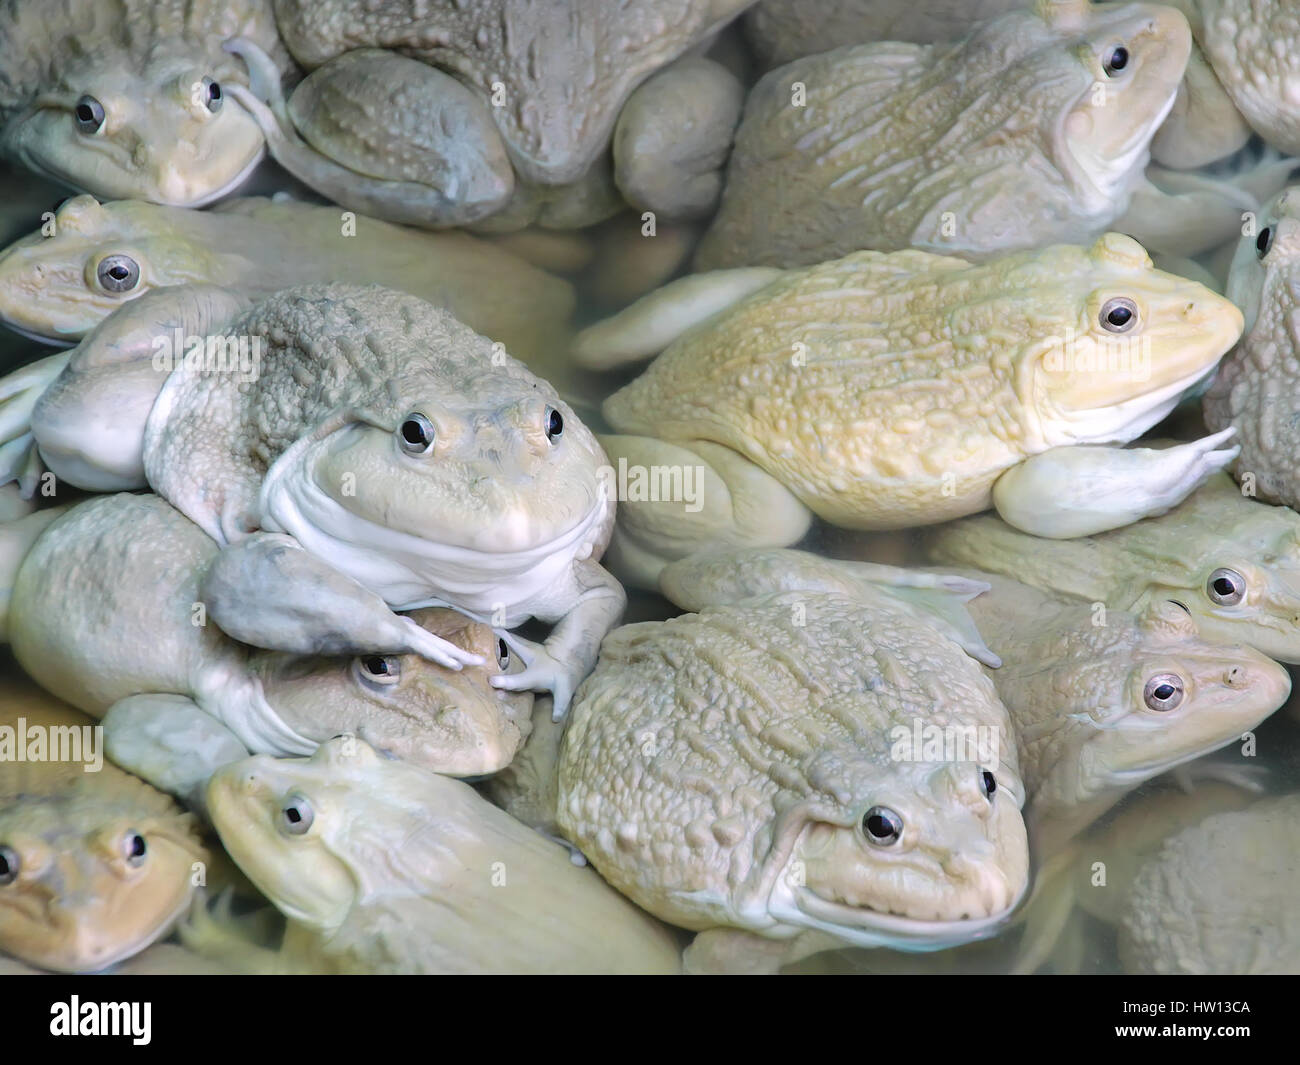 Frogs in the farm - Chinese edible frog, East asian bullfrog, Taiwanese frog - Stock Image